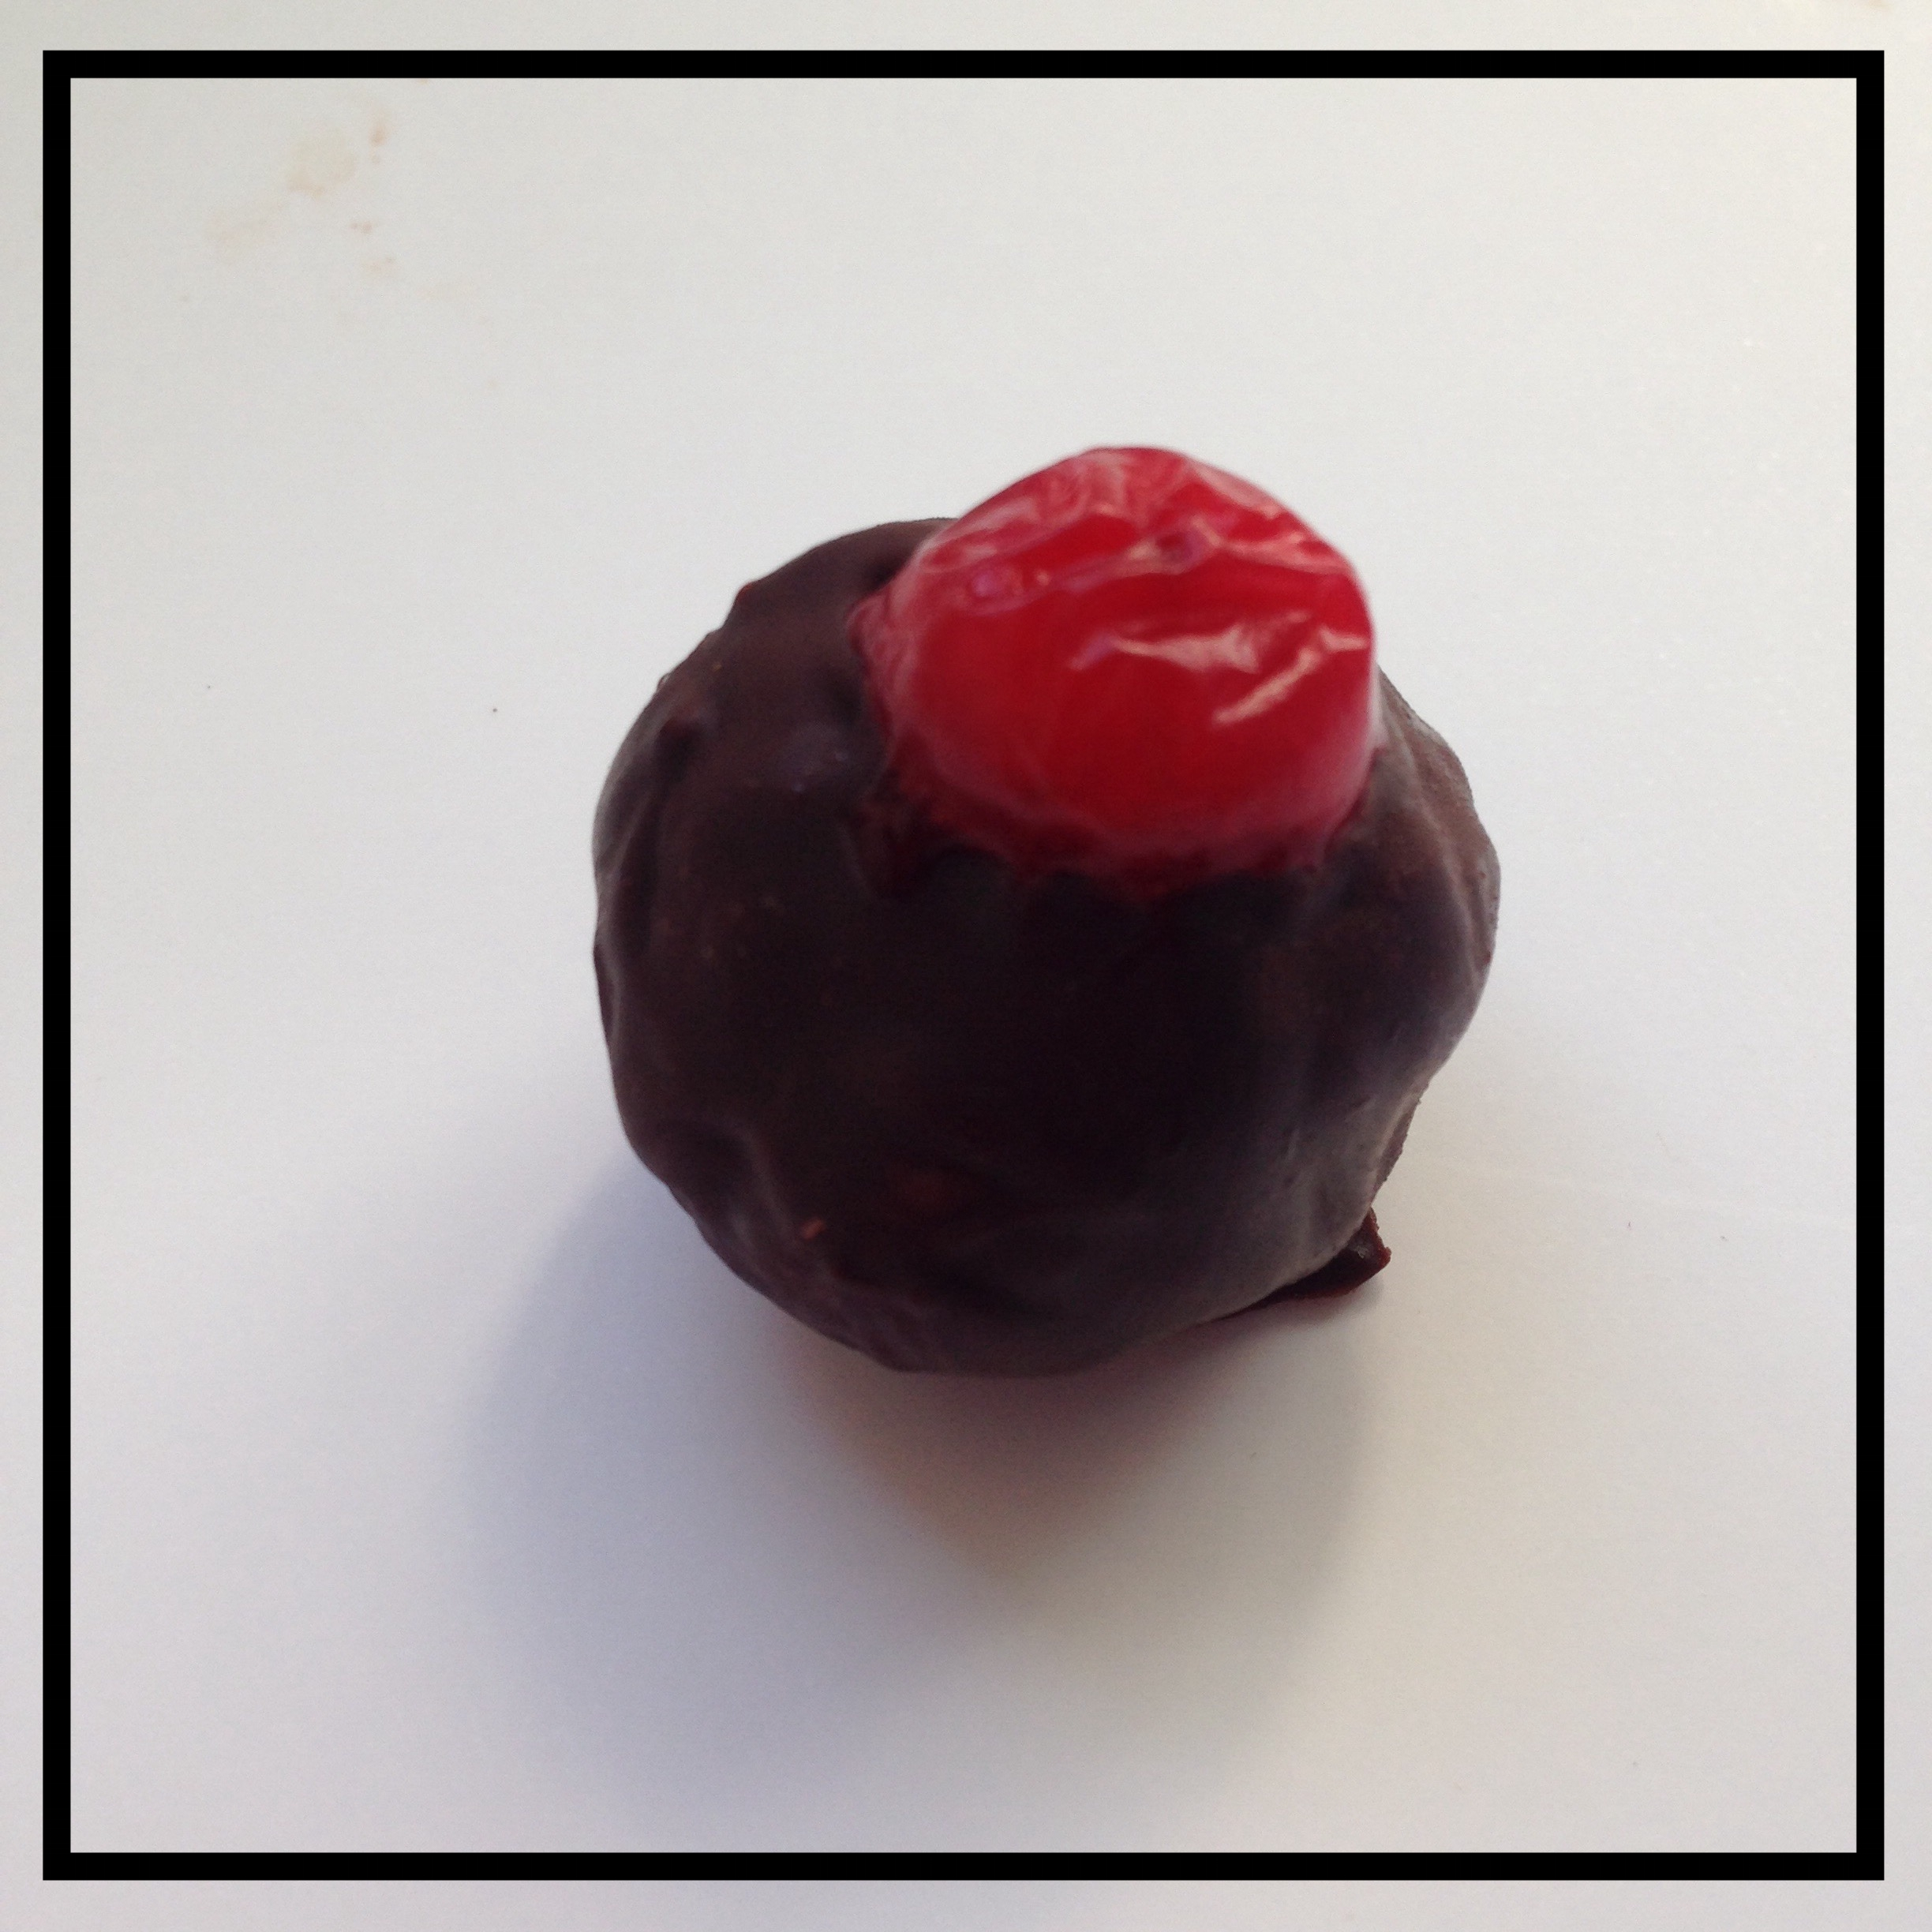 CRANBERRY   Fresh cranberry infused into chocolate ganache